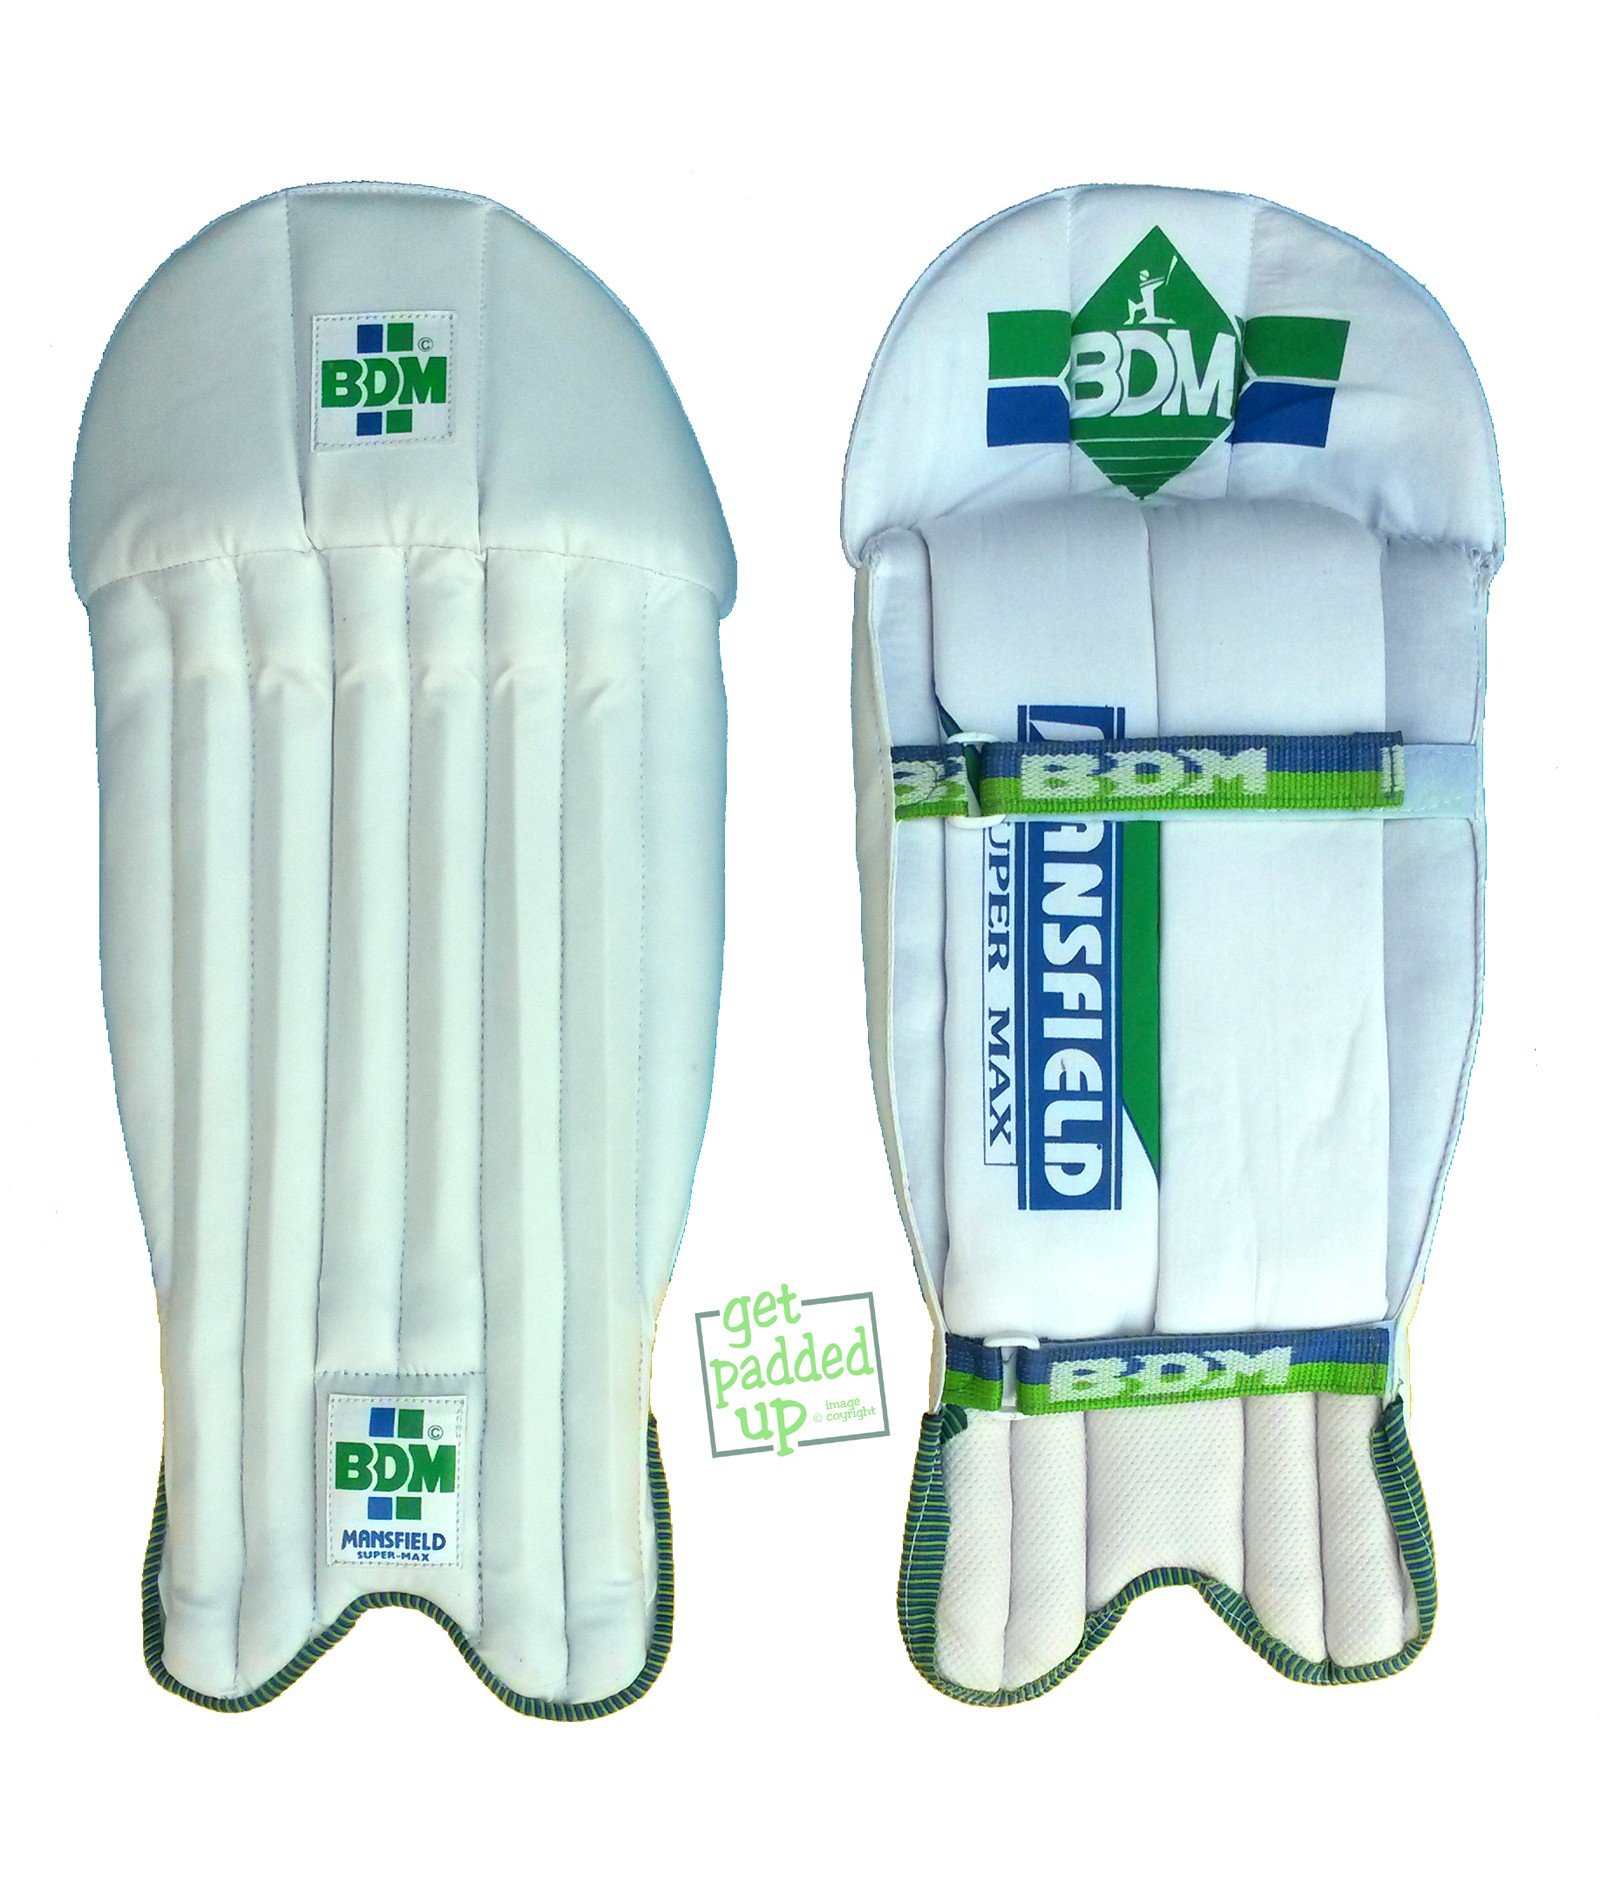 BDM Super Max Cricket Wicket Keeping Pads